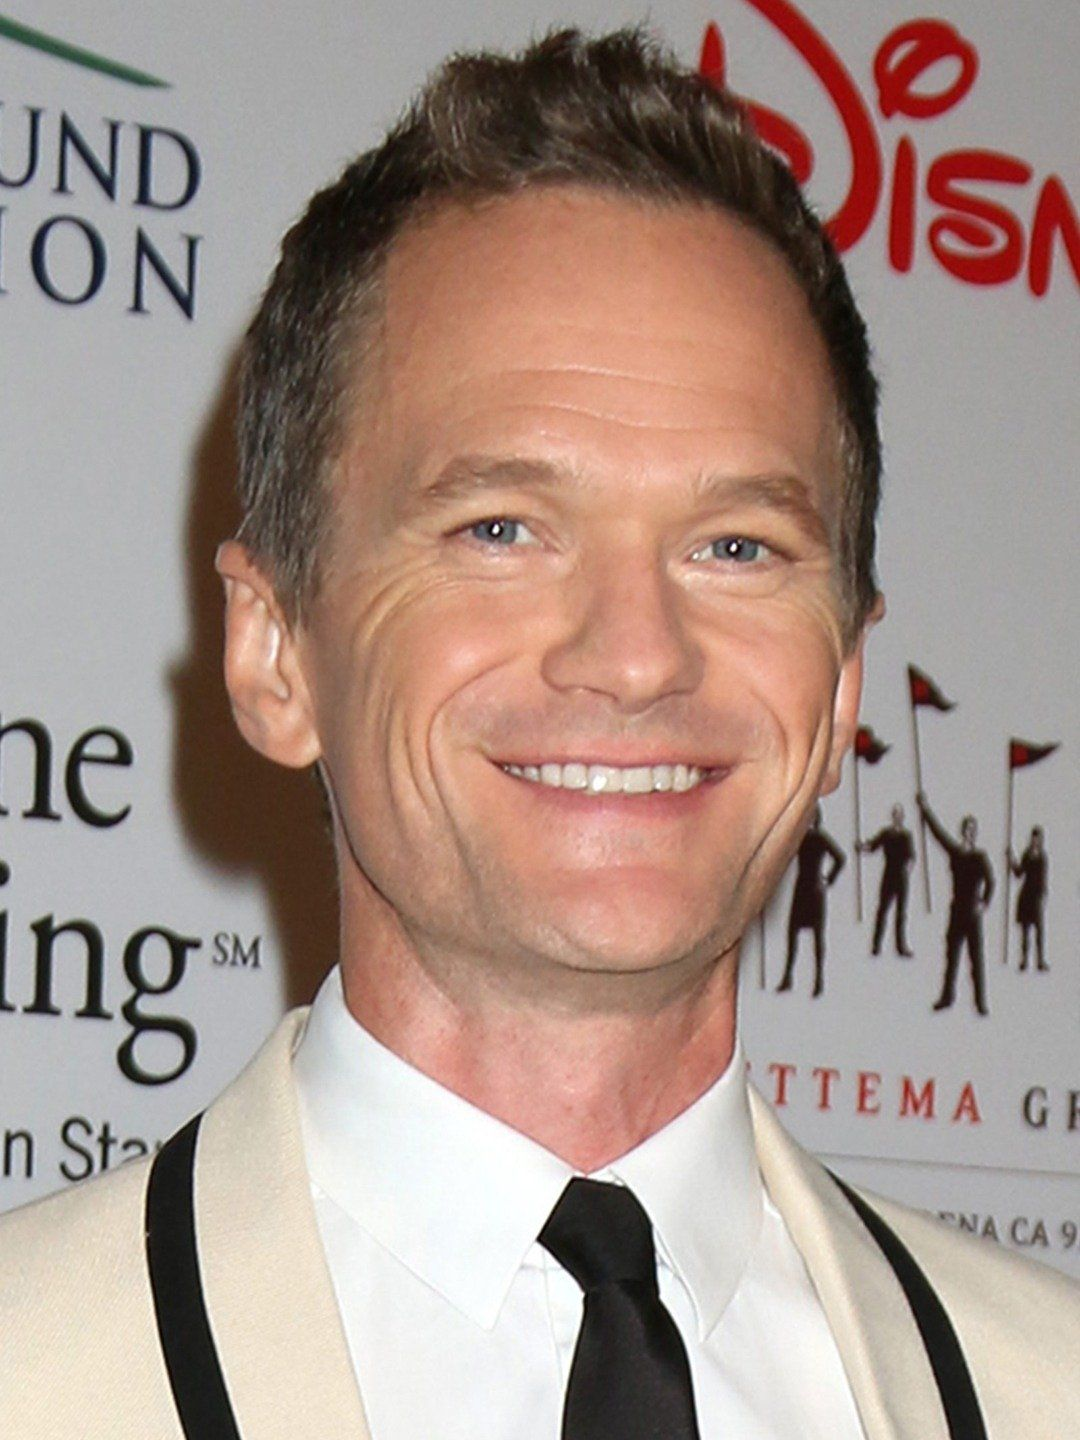 Find Movies And Tv Shows Where Neil Patrick Harris Appears On